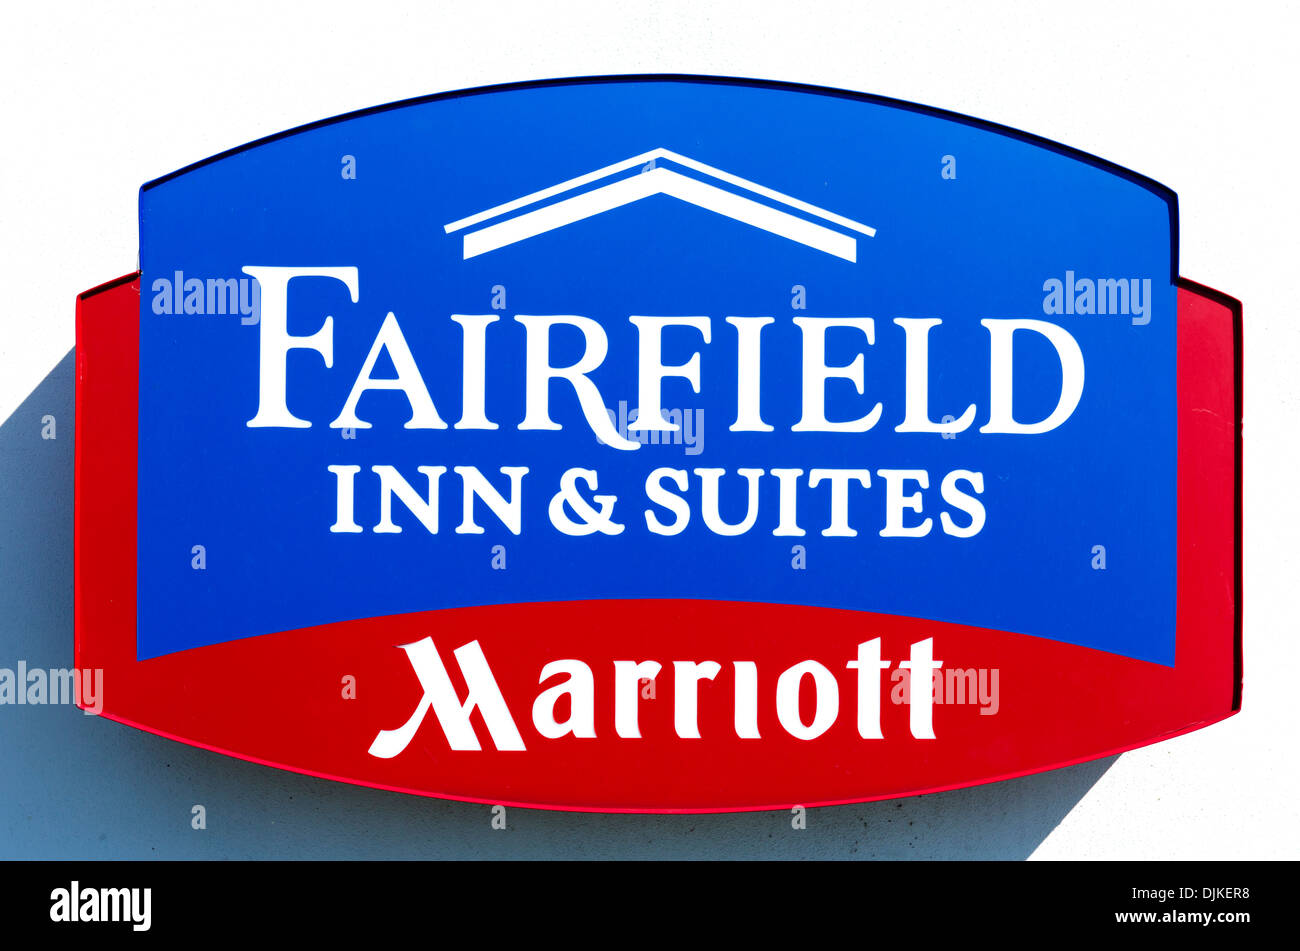 Fairfield Inn and Suites by Marriottl sign, Central Florida, USA - Stock Image